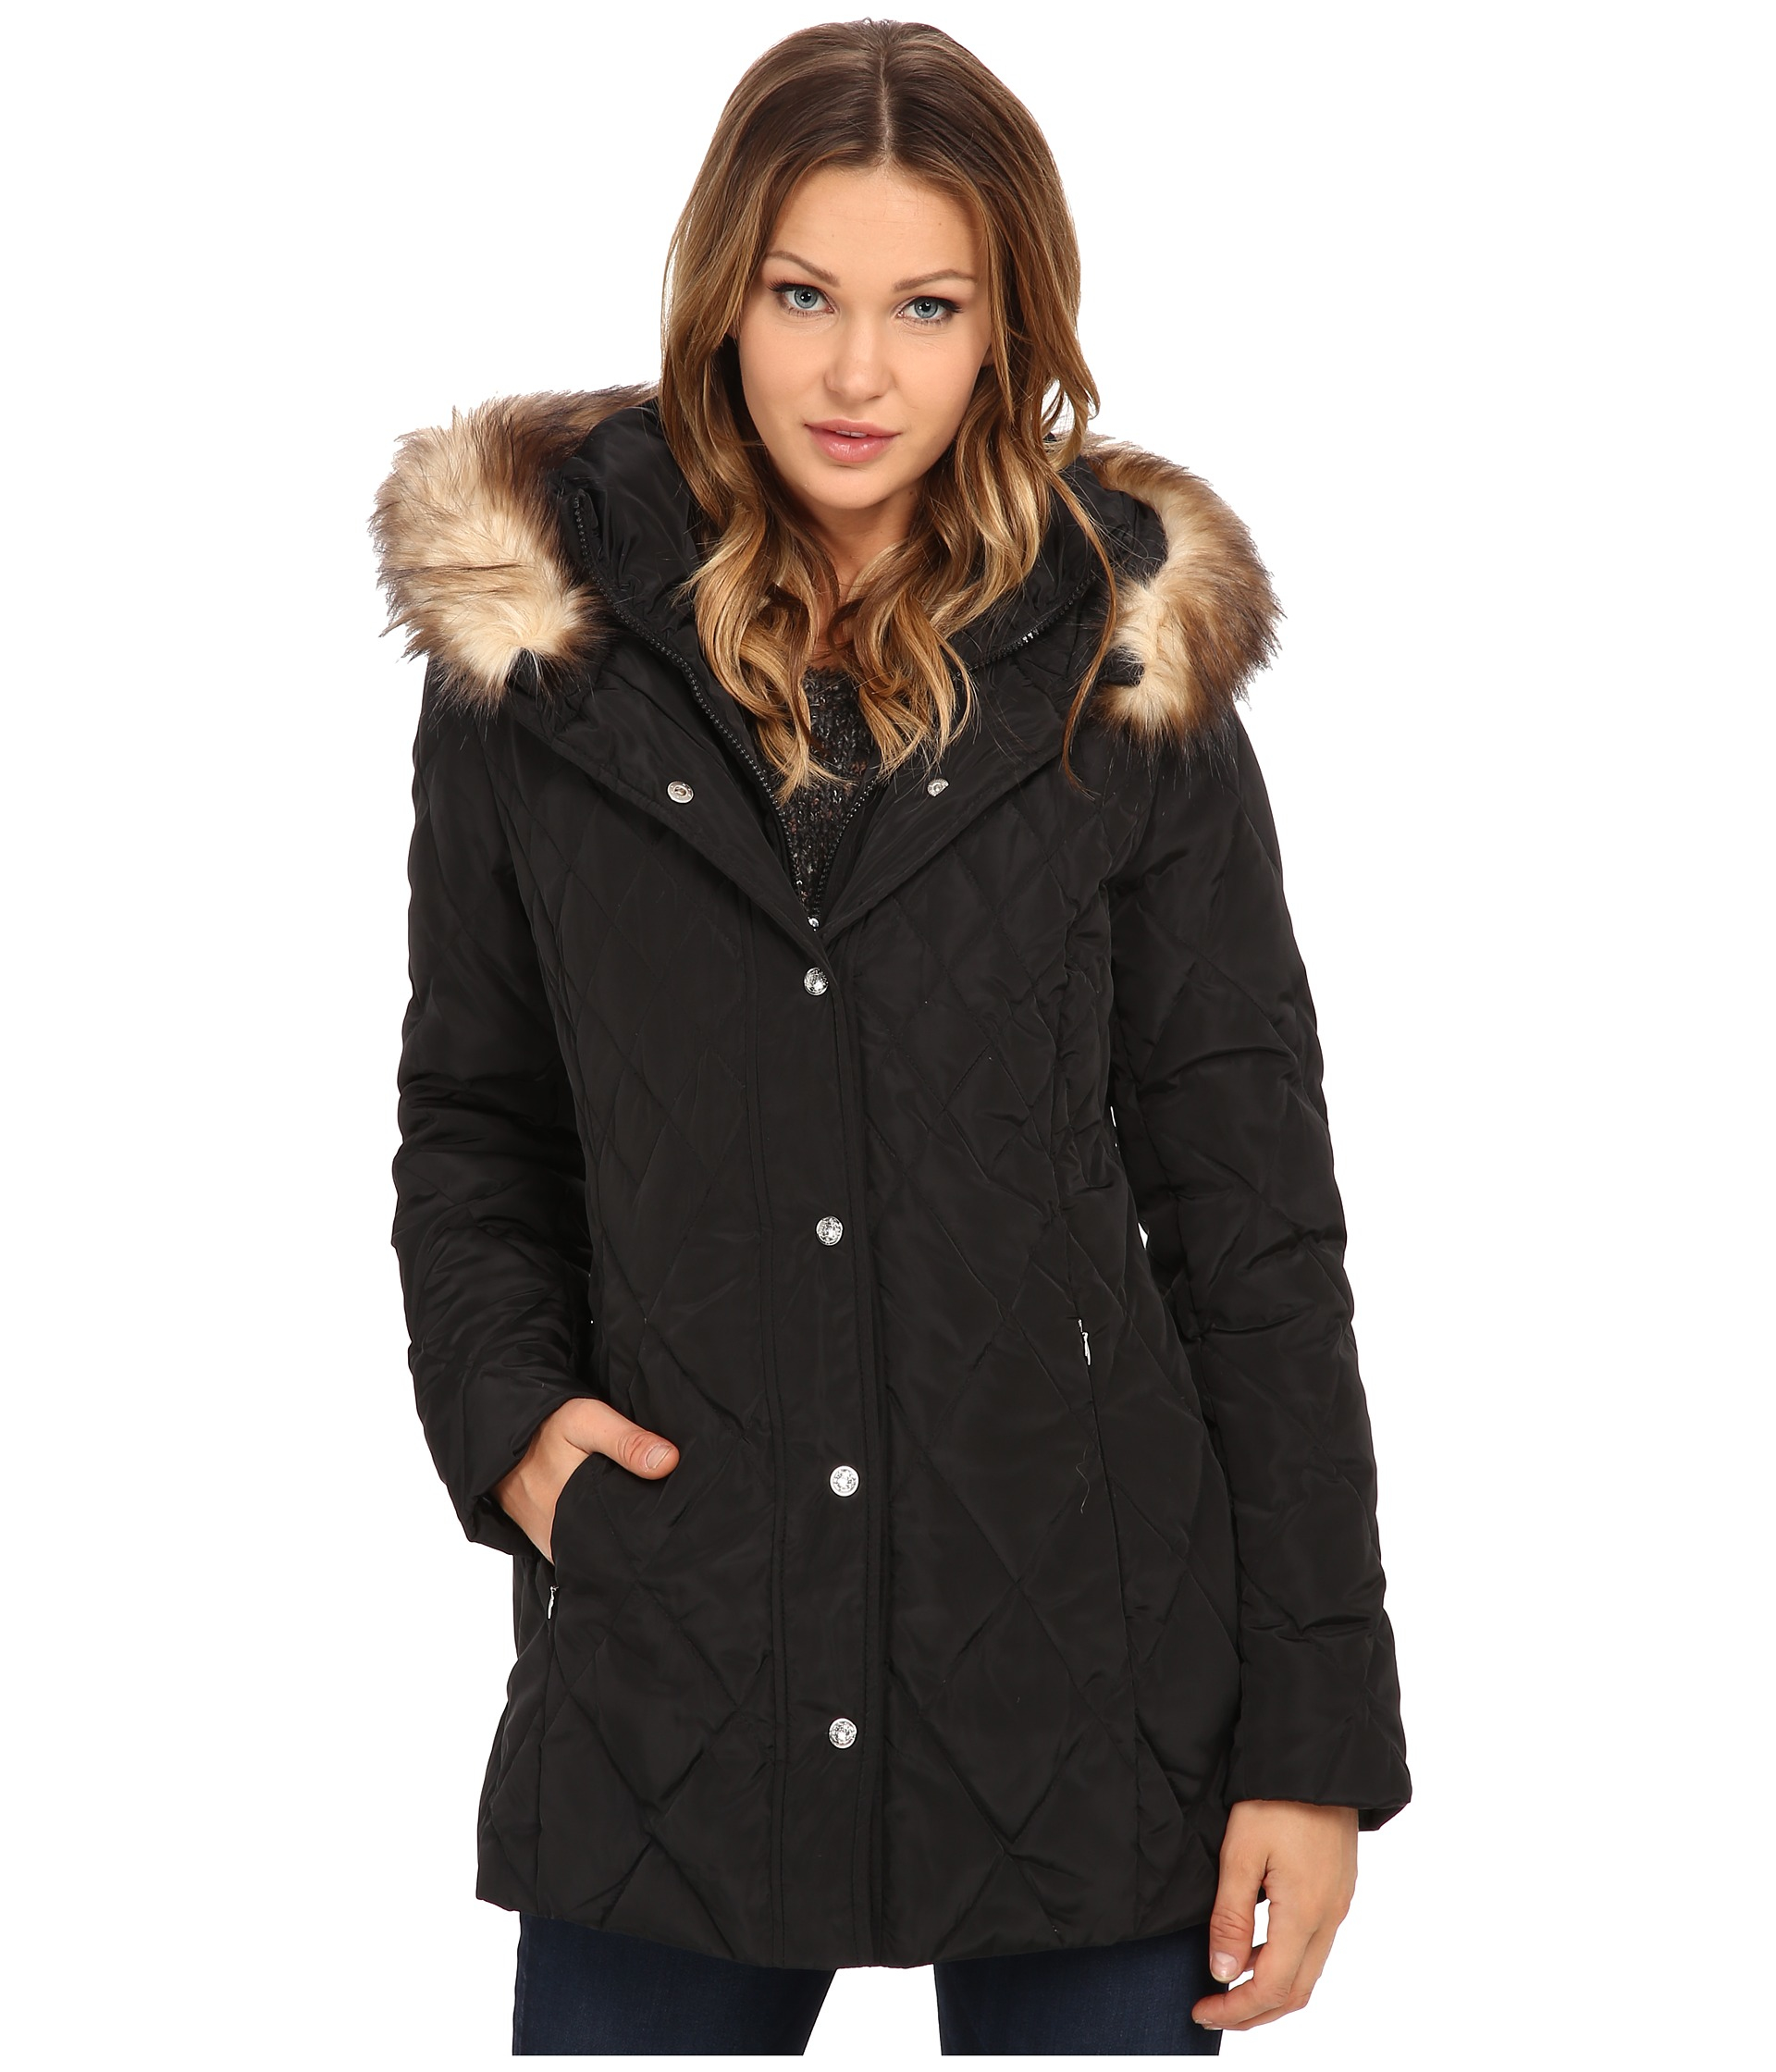 Jessica Simpson Quilted Down With Faux Fur Trim In Black